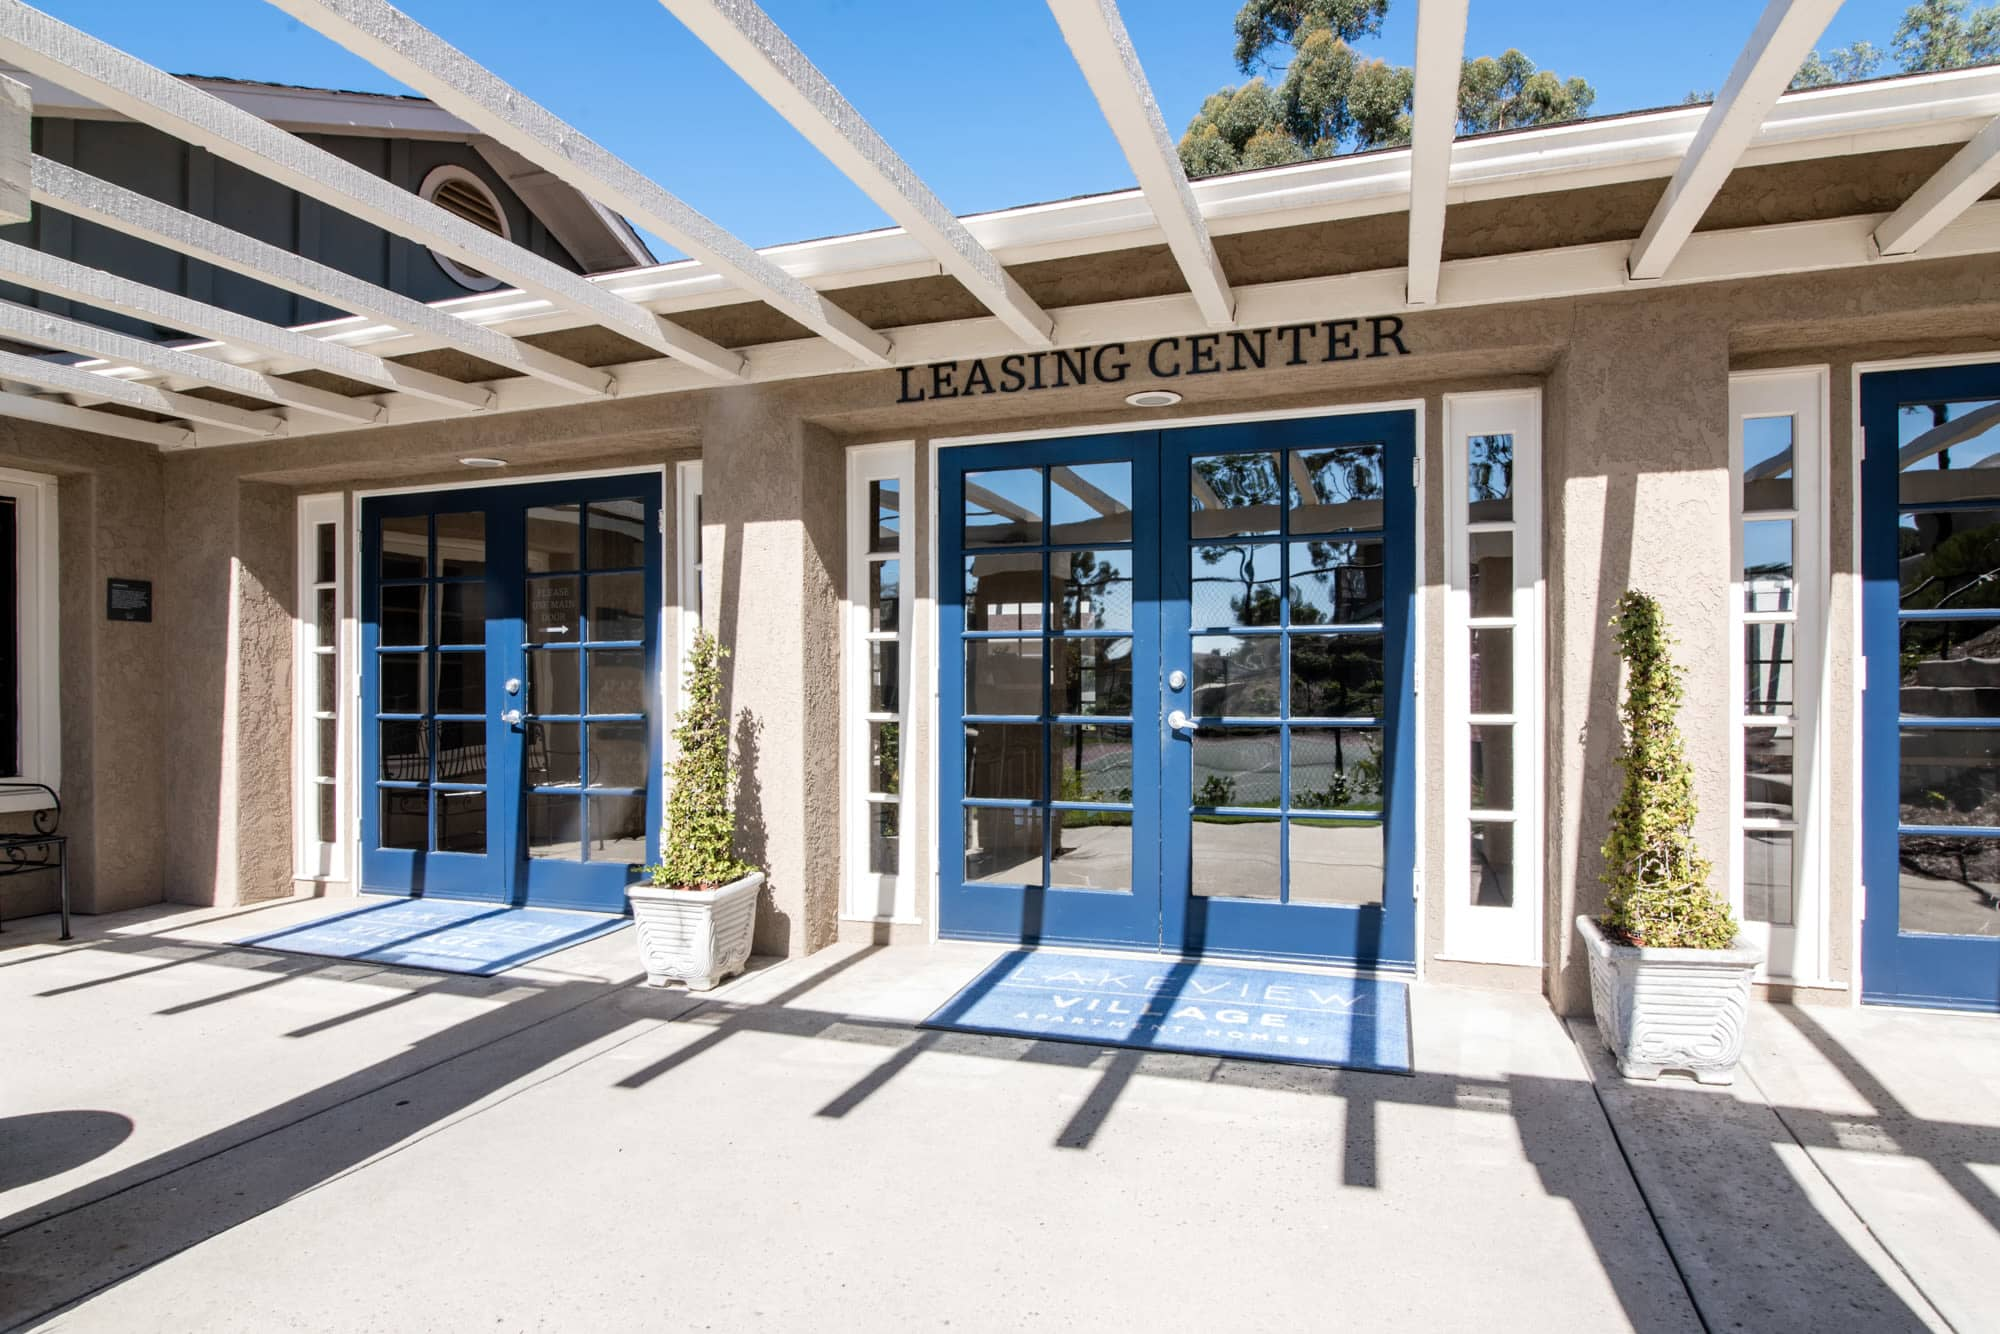 Entryway to the leasing office at Lakeview Village Apartments in Spring Valley, California